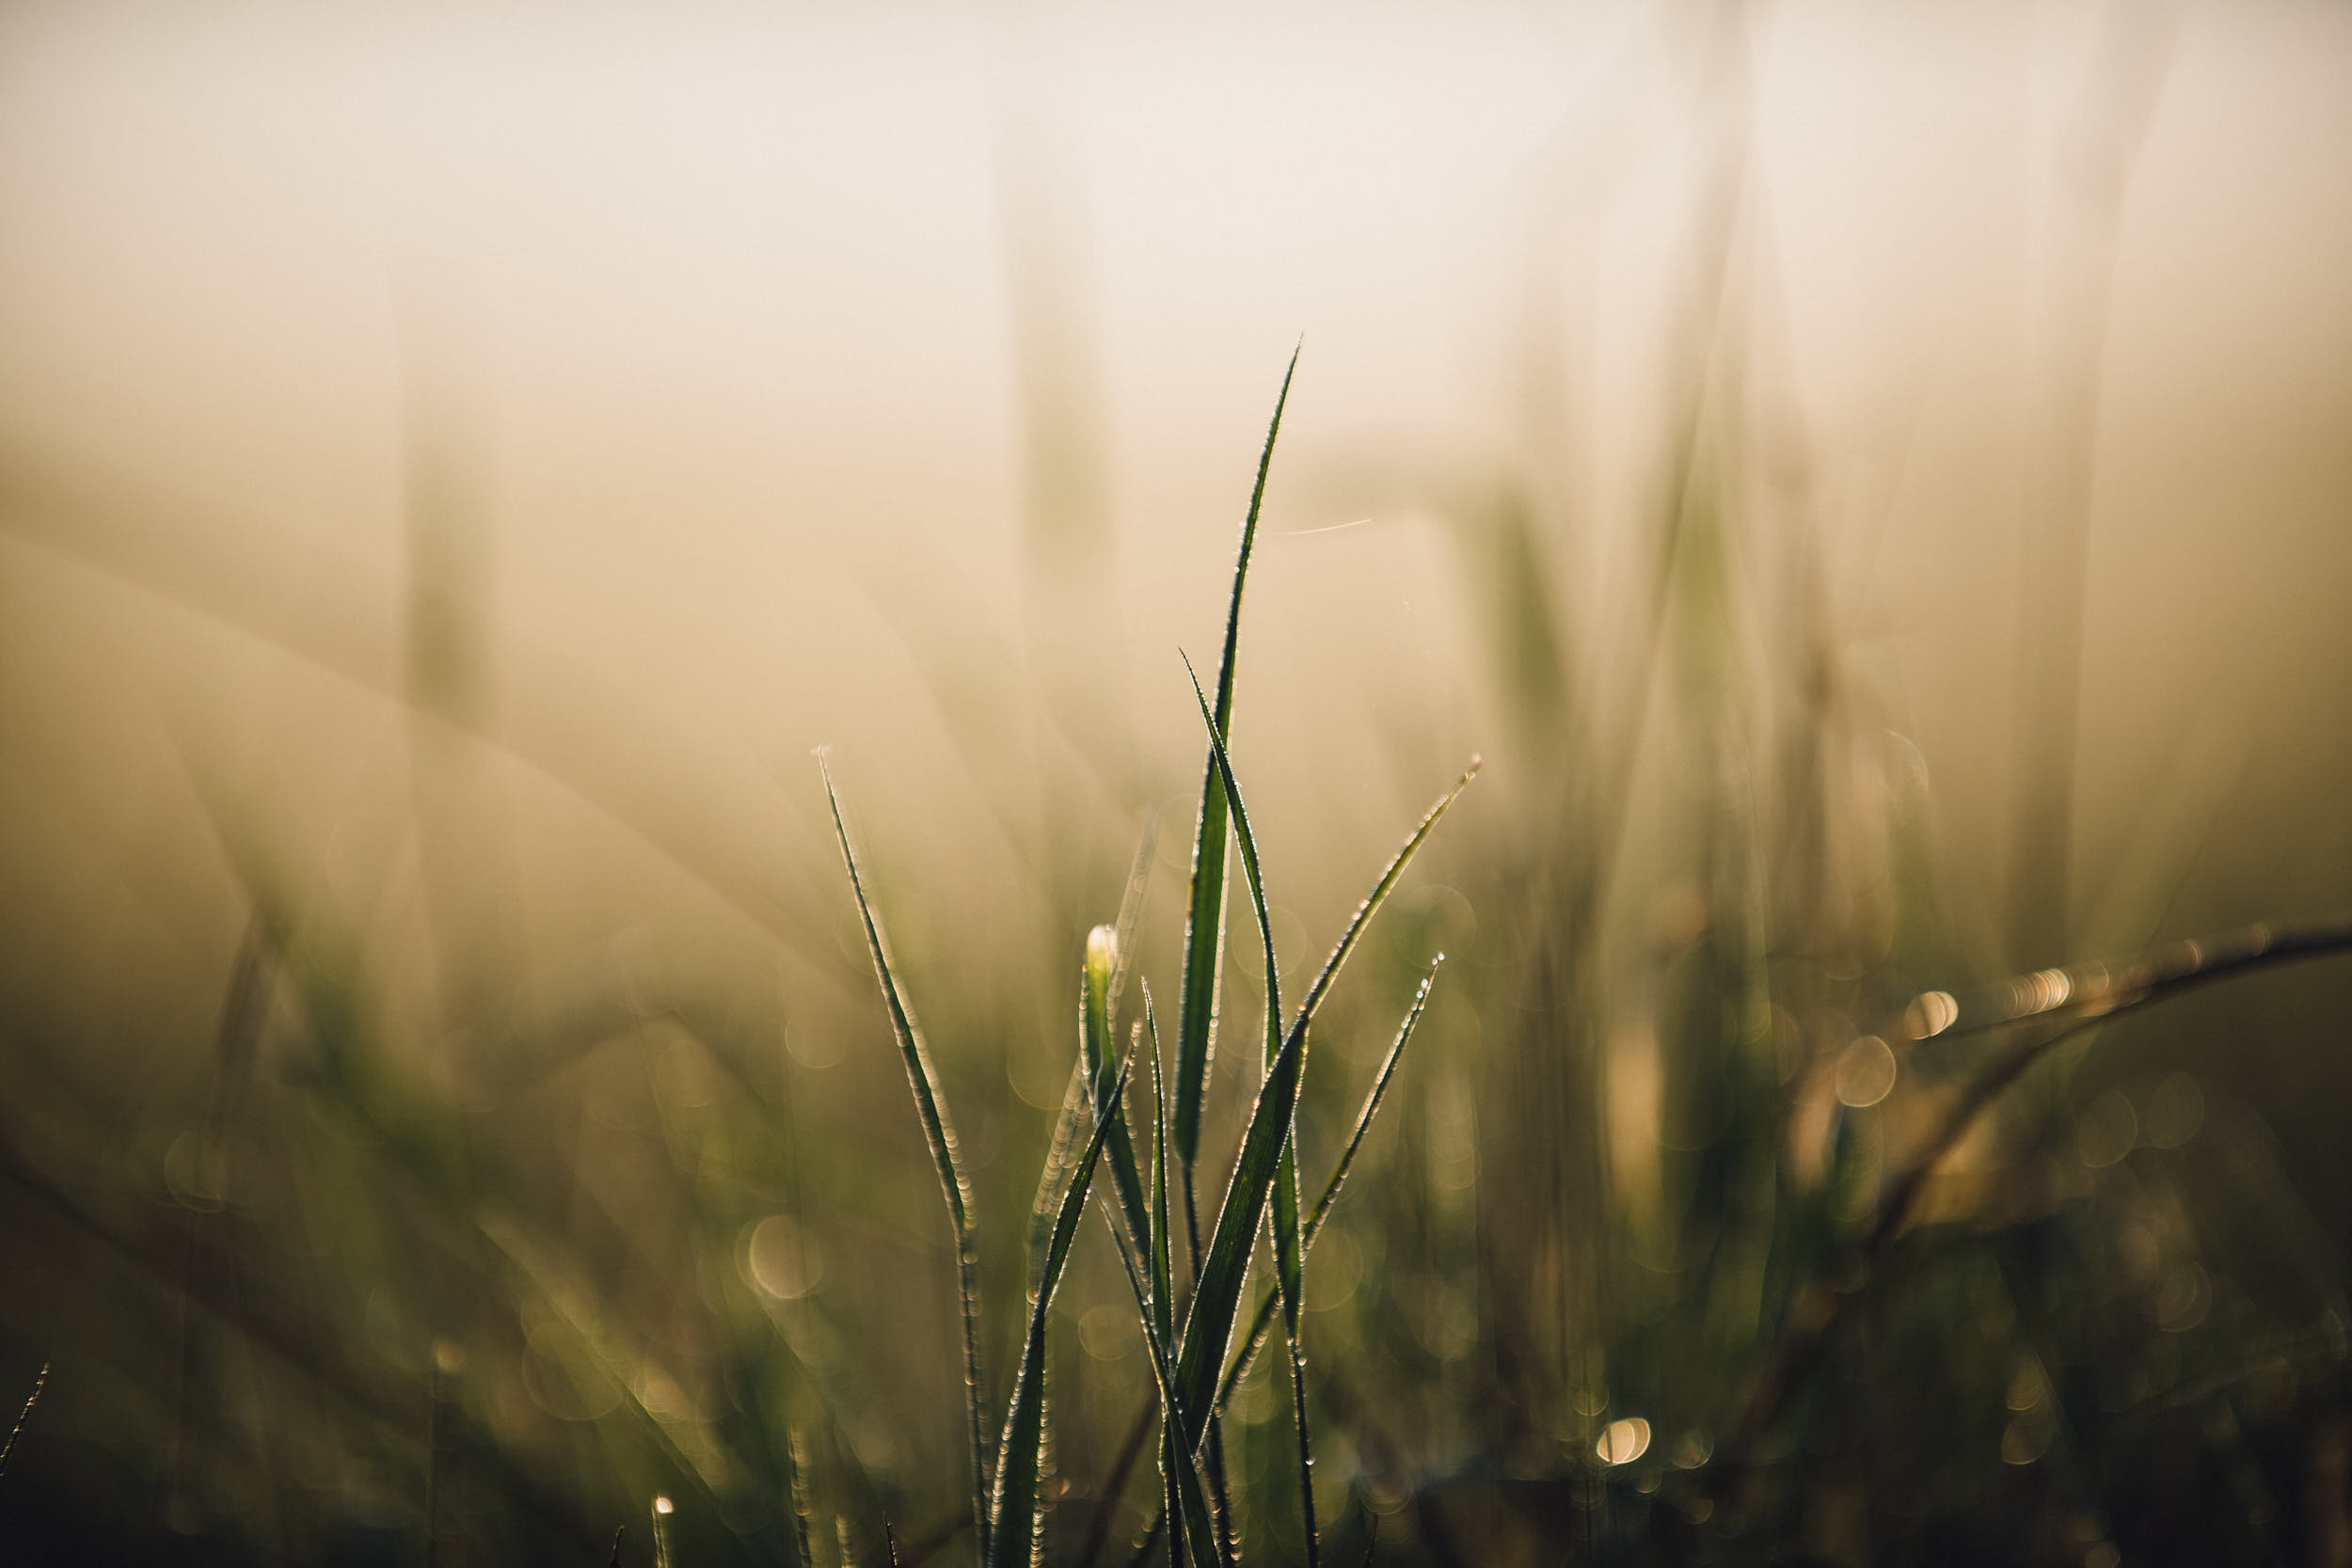 Minimal, almost macro photograph of backlit grass at dawn.